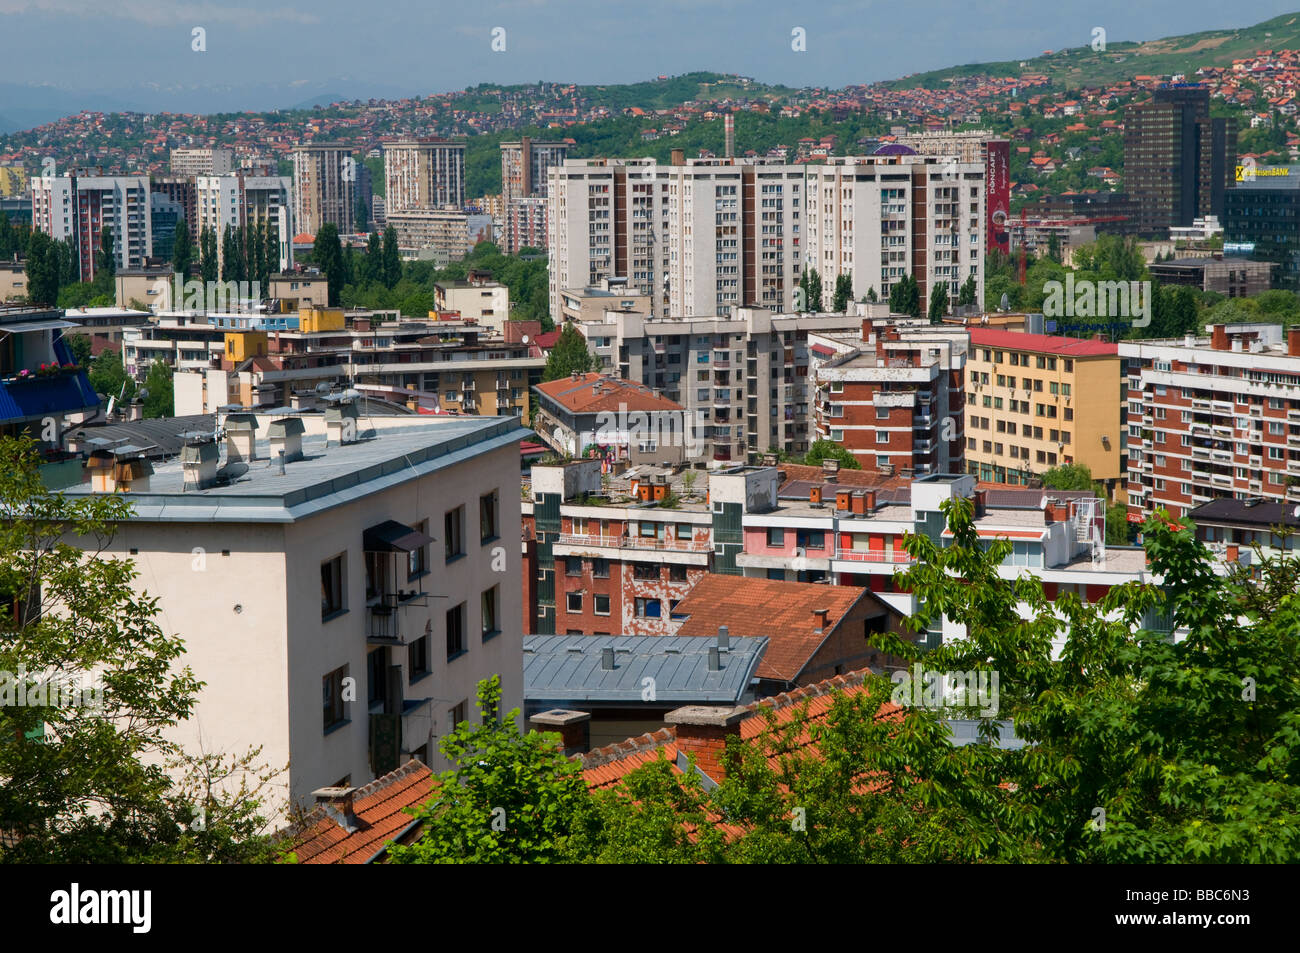 View of residential buildings in the city of Sarajevo capital of Bosnia Herzegovina - Stock Image